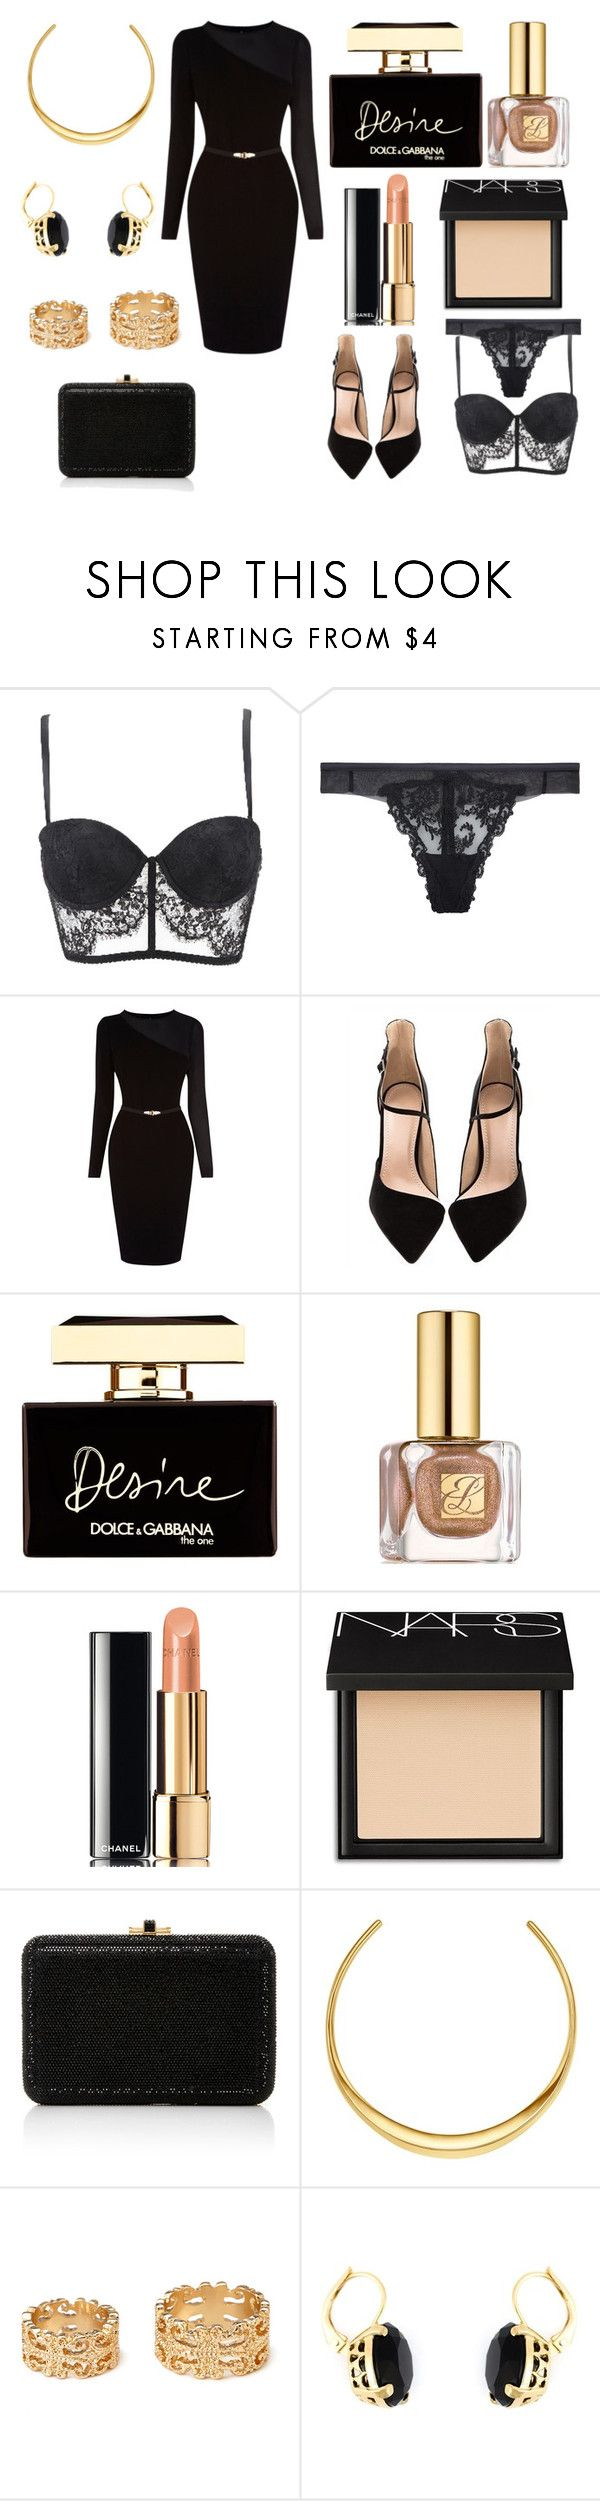 """Без названия #3548"" by southerncomfort ❤ liked on Polyvore featuring Bastyan, Dolce&Gabbana, Estée Lauder, Chanel, NARS Cosmetics, Judith Leiber, Michael Kors, Forever 21 and Wouters & Hendrix"